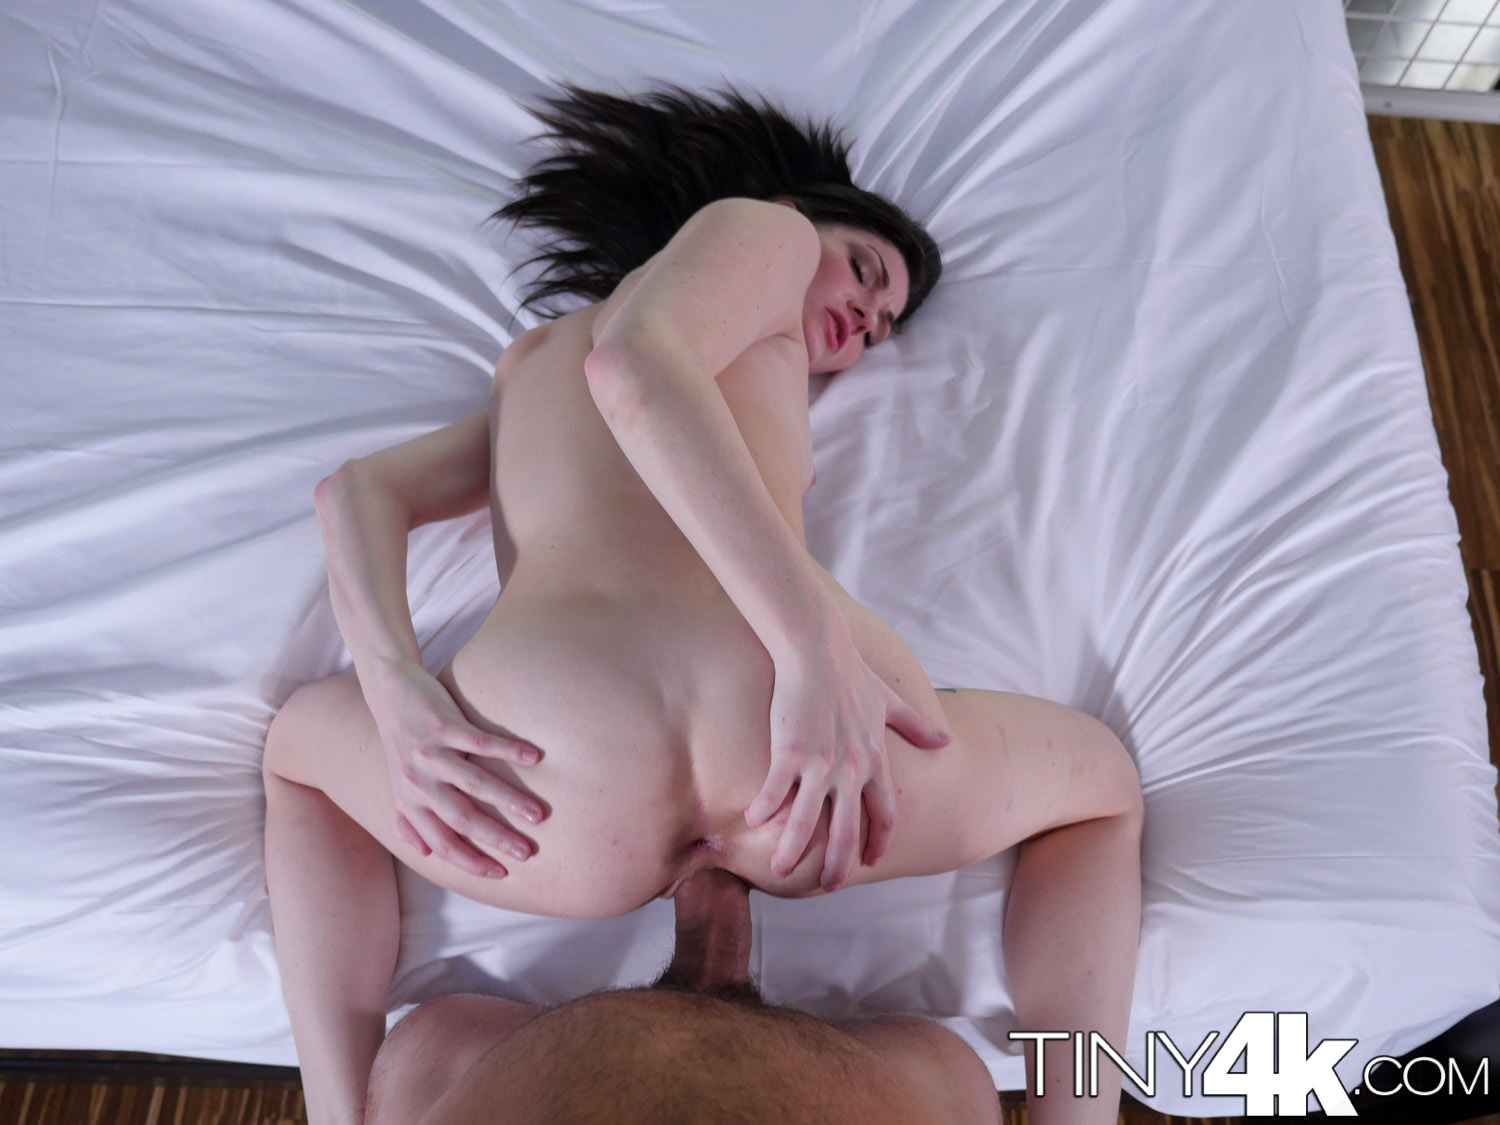 4k tiny4k tiny alice march stretches her pussy to take hug - 3 9